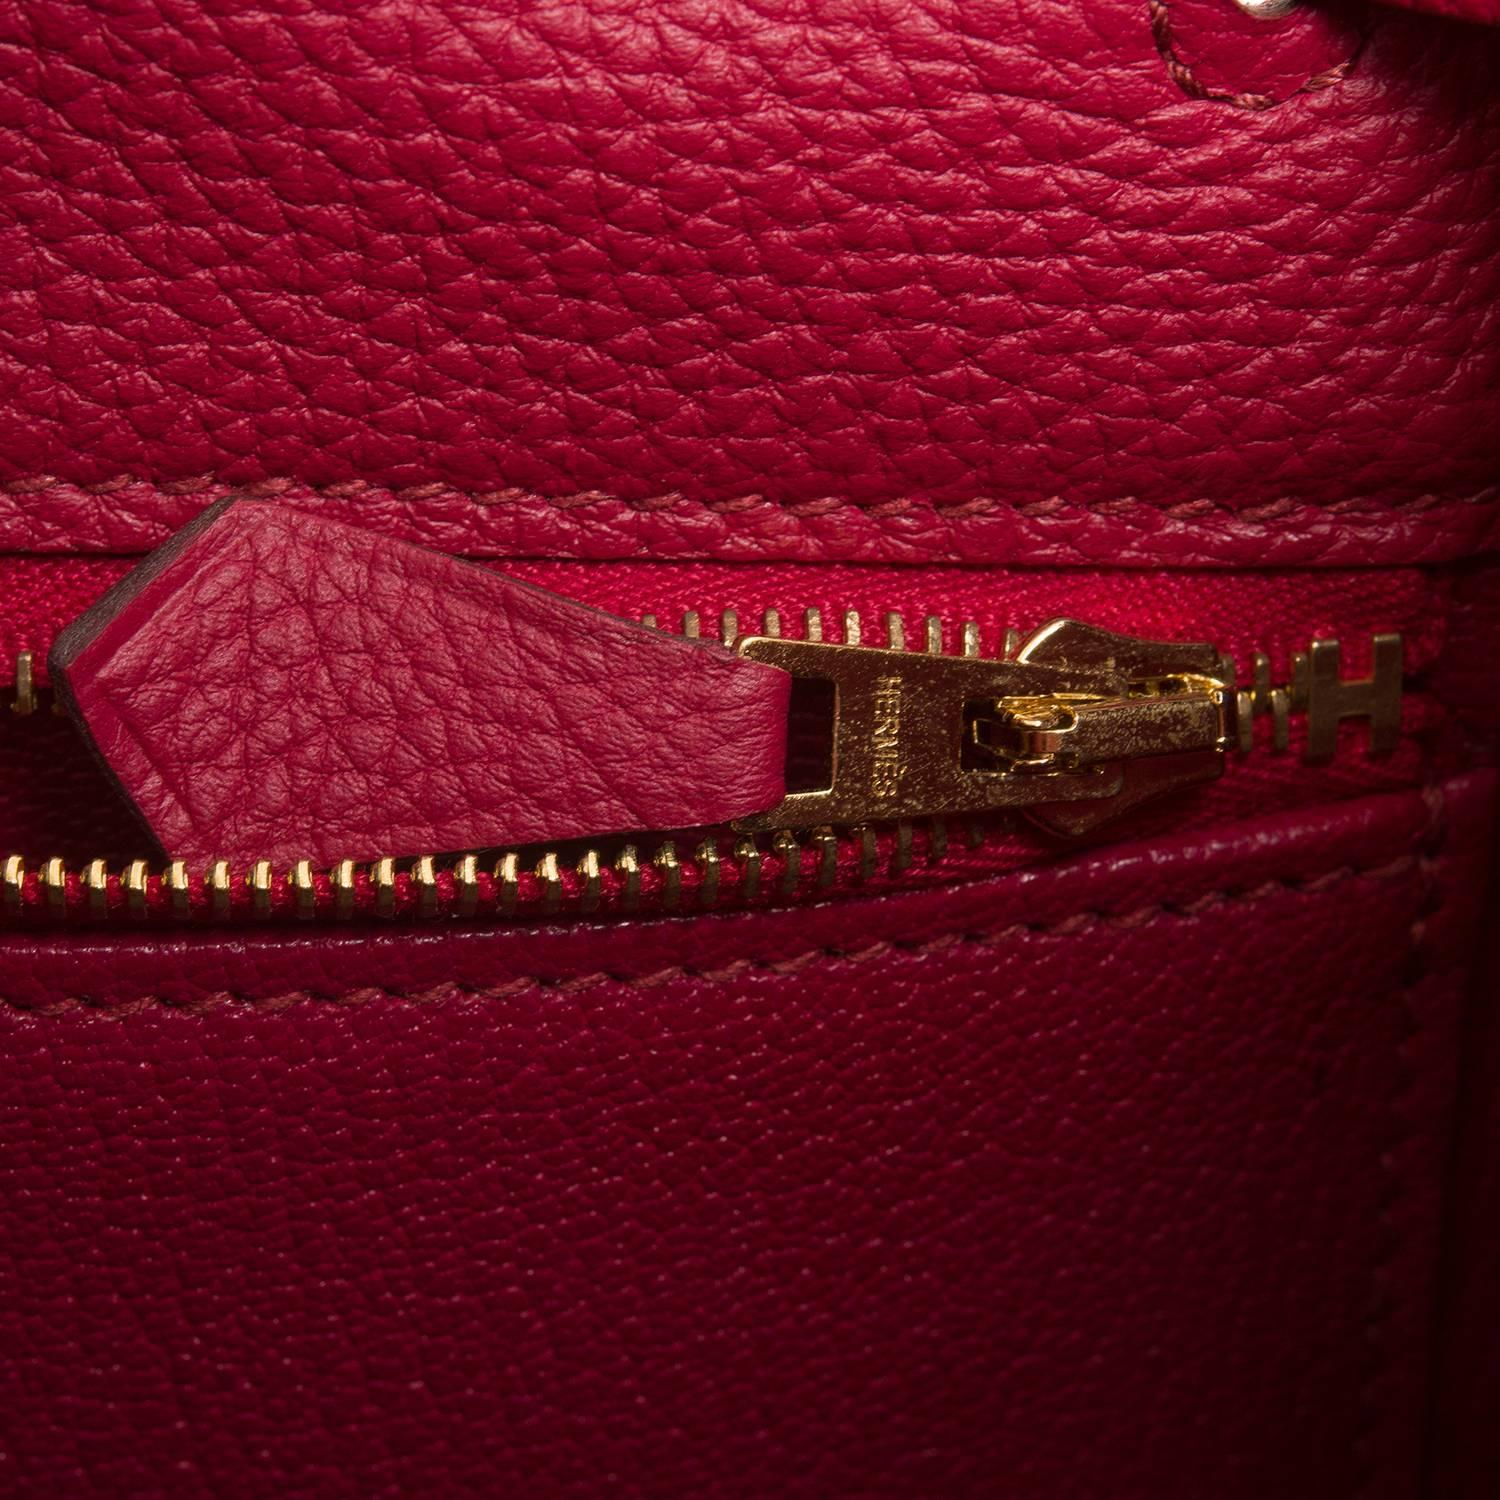 hermes birkin replica reviews - hermes rubis kelly 32cm in clemence leather with palladium hardware